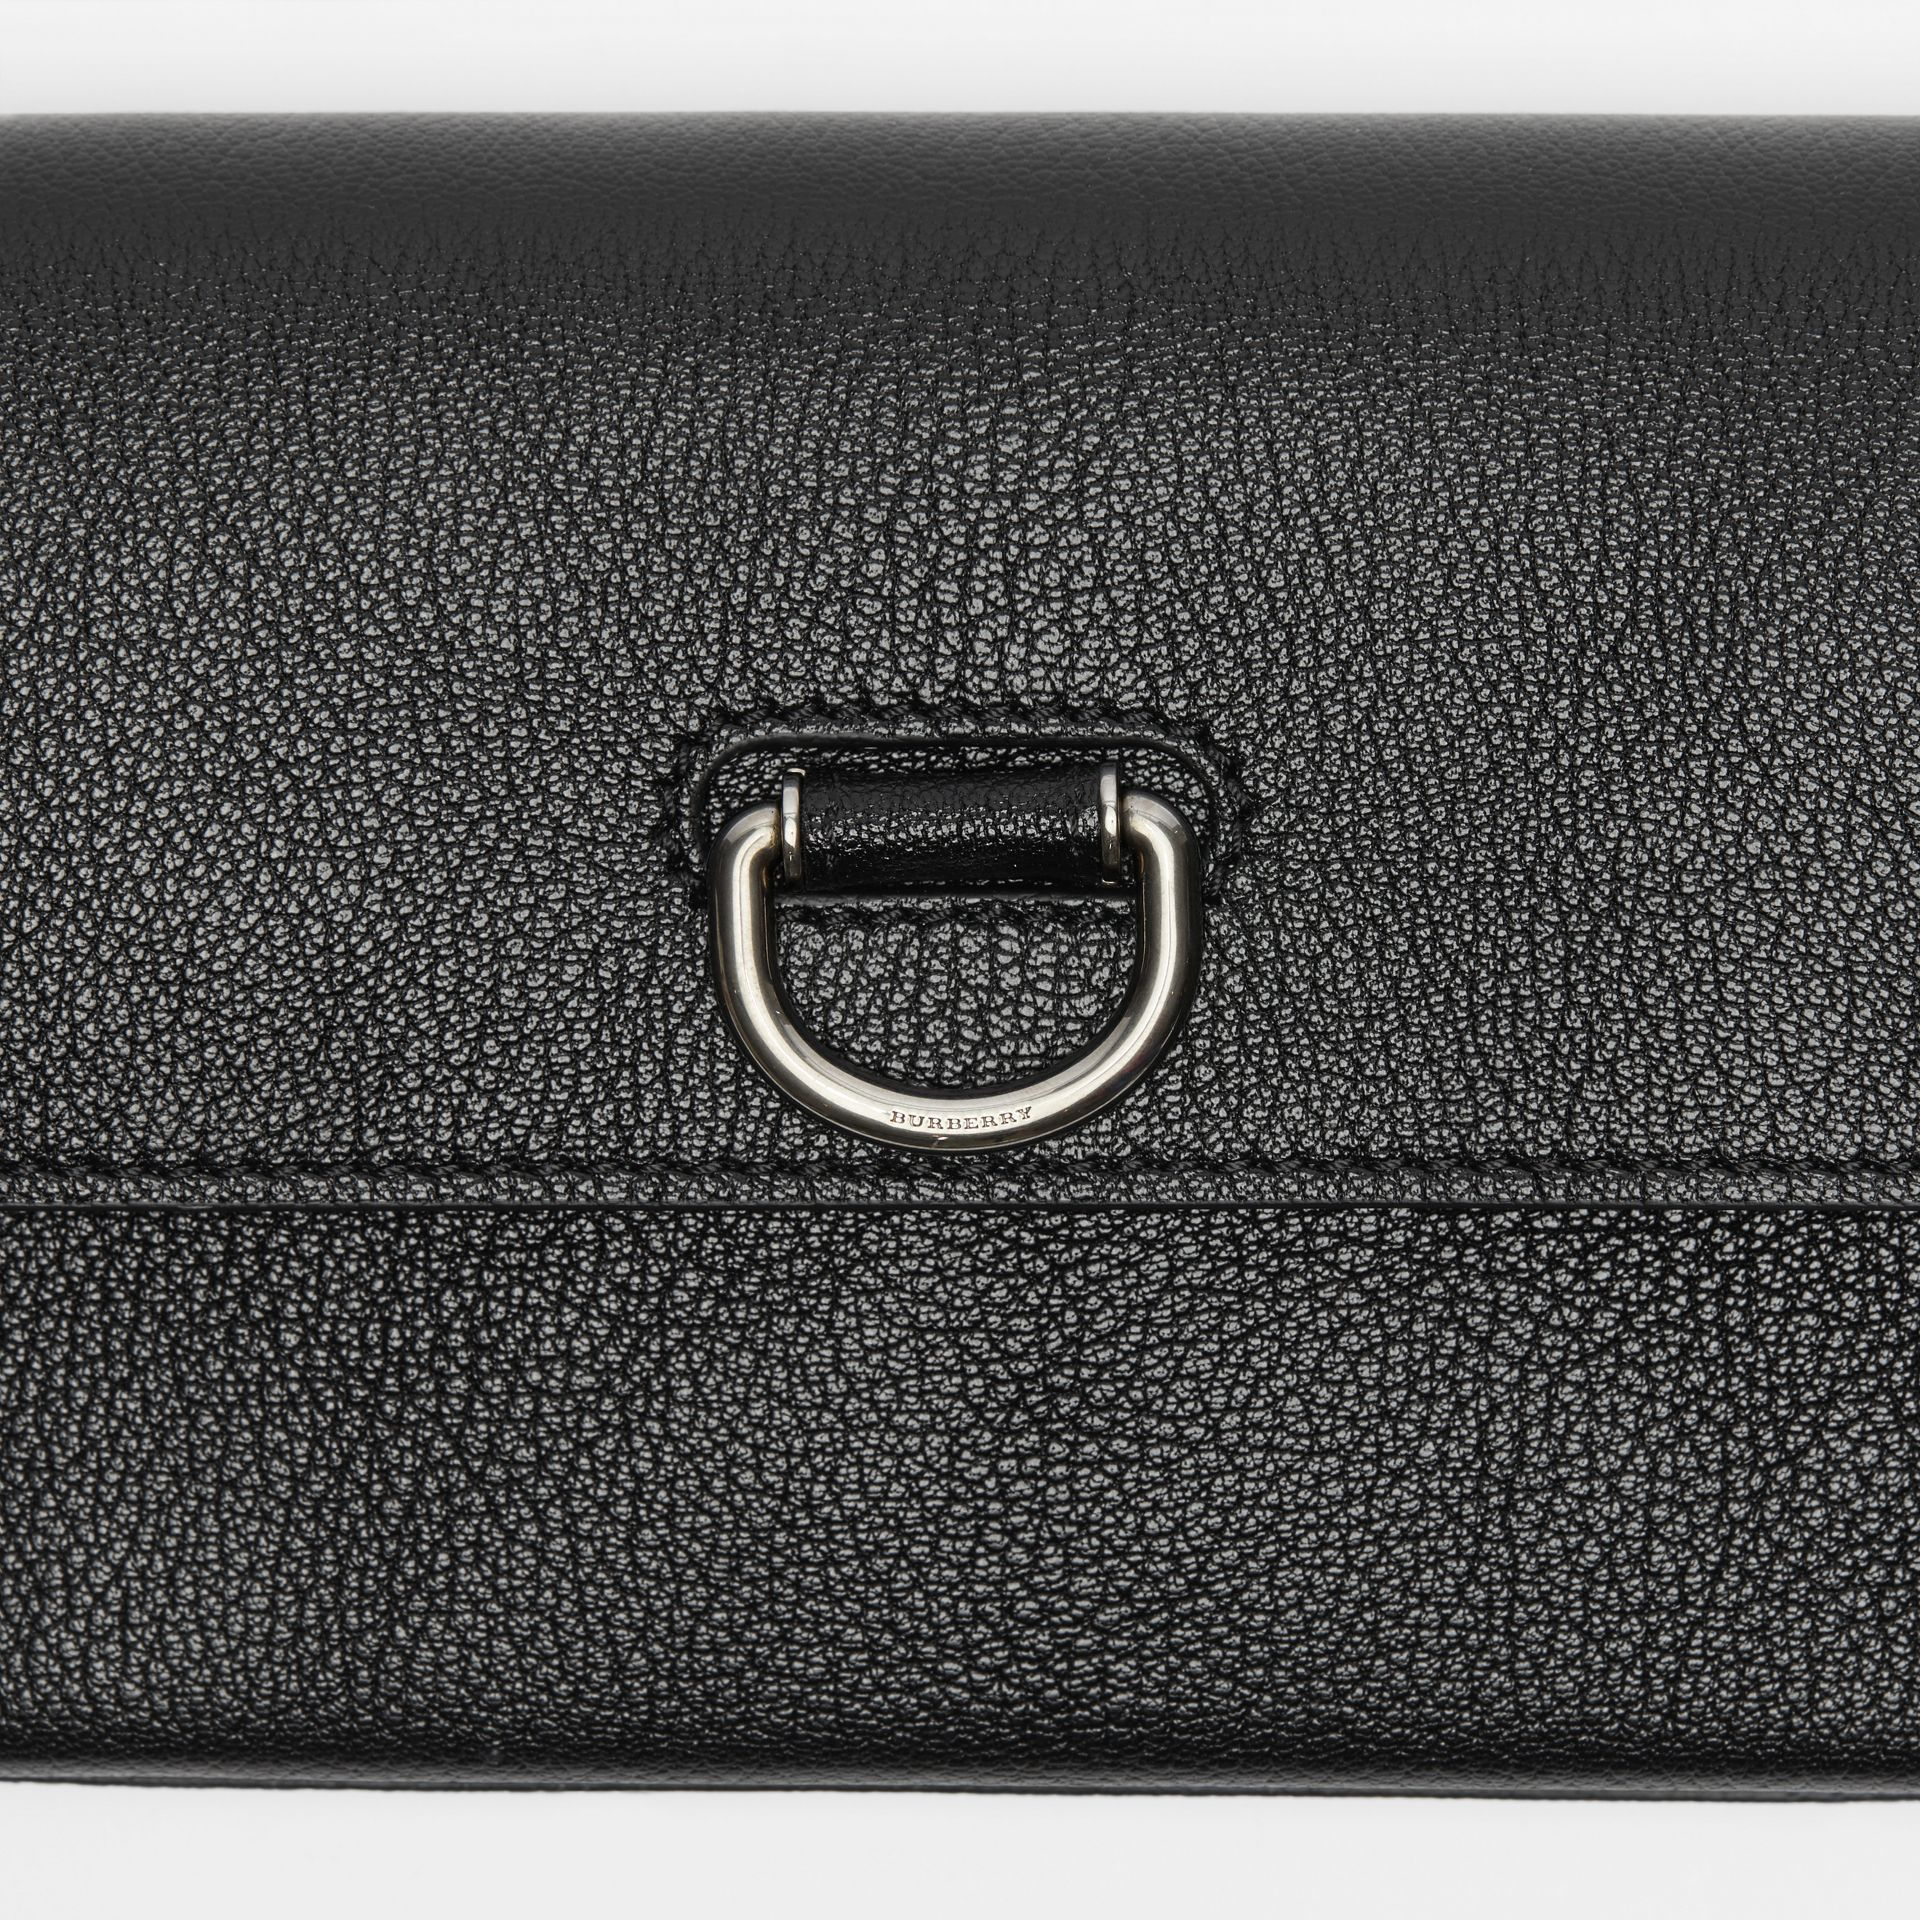 D-ring Leather Wallet with Detachable Strap in Black - Women | Burberry United Kingdom - gallery image 1